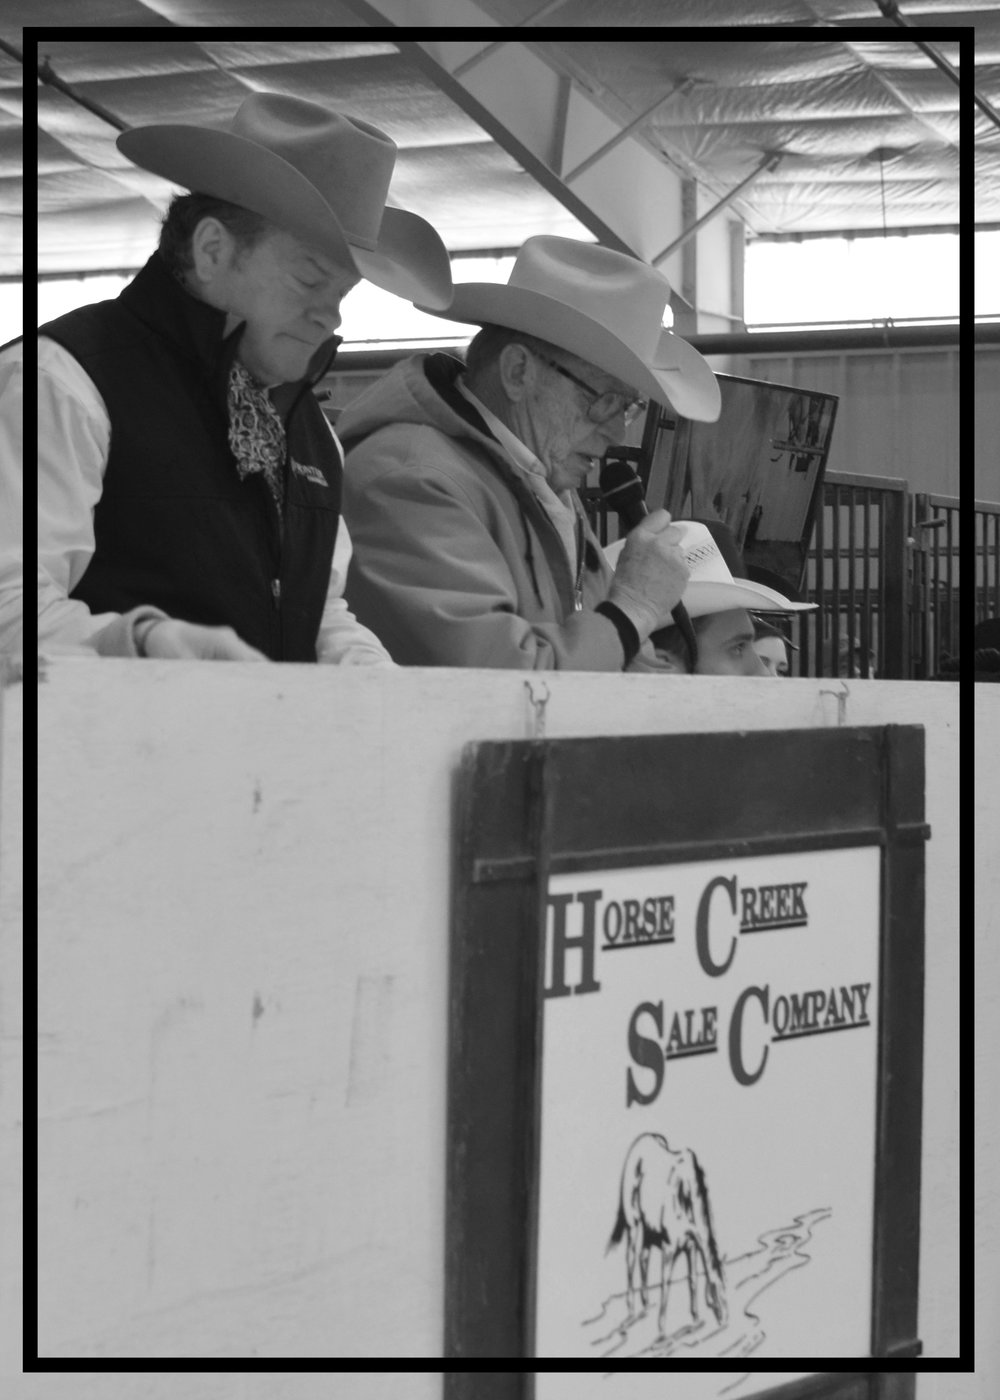 John Hayes Owner Horse Creek Sale Company & Joel White Auctioneer for Horse Creek Sale Company